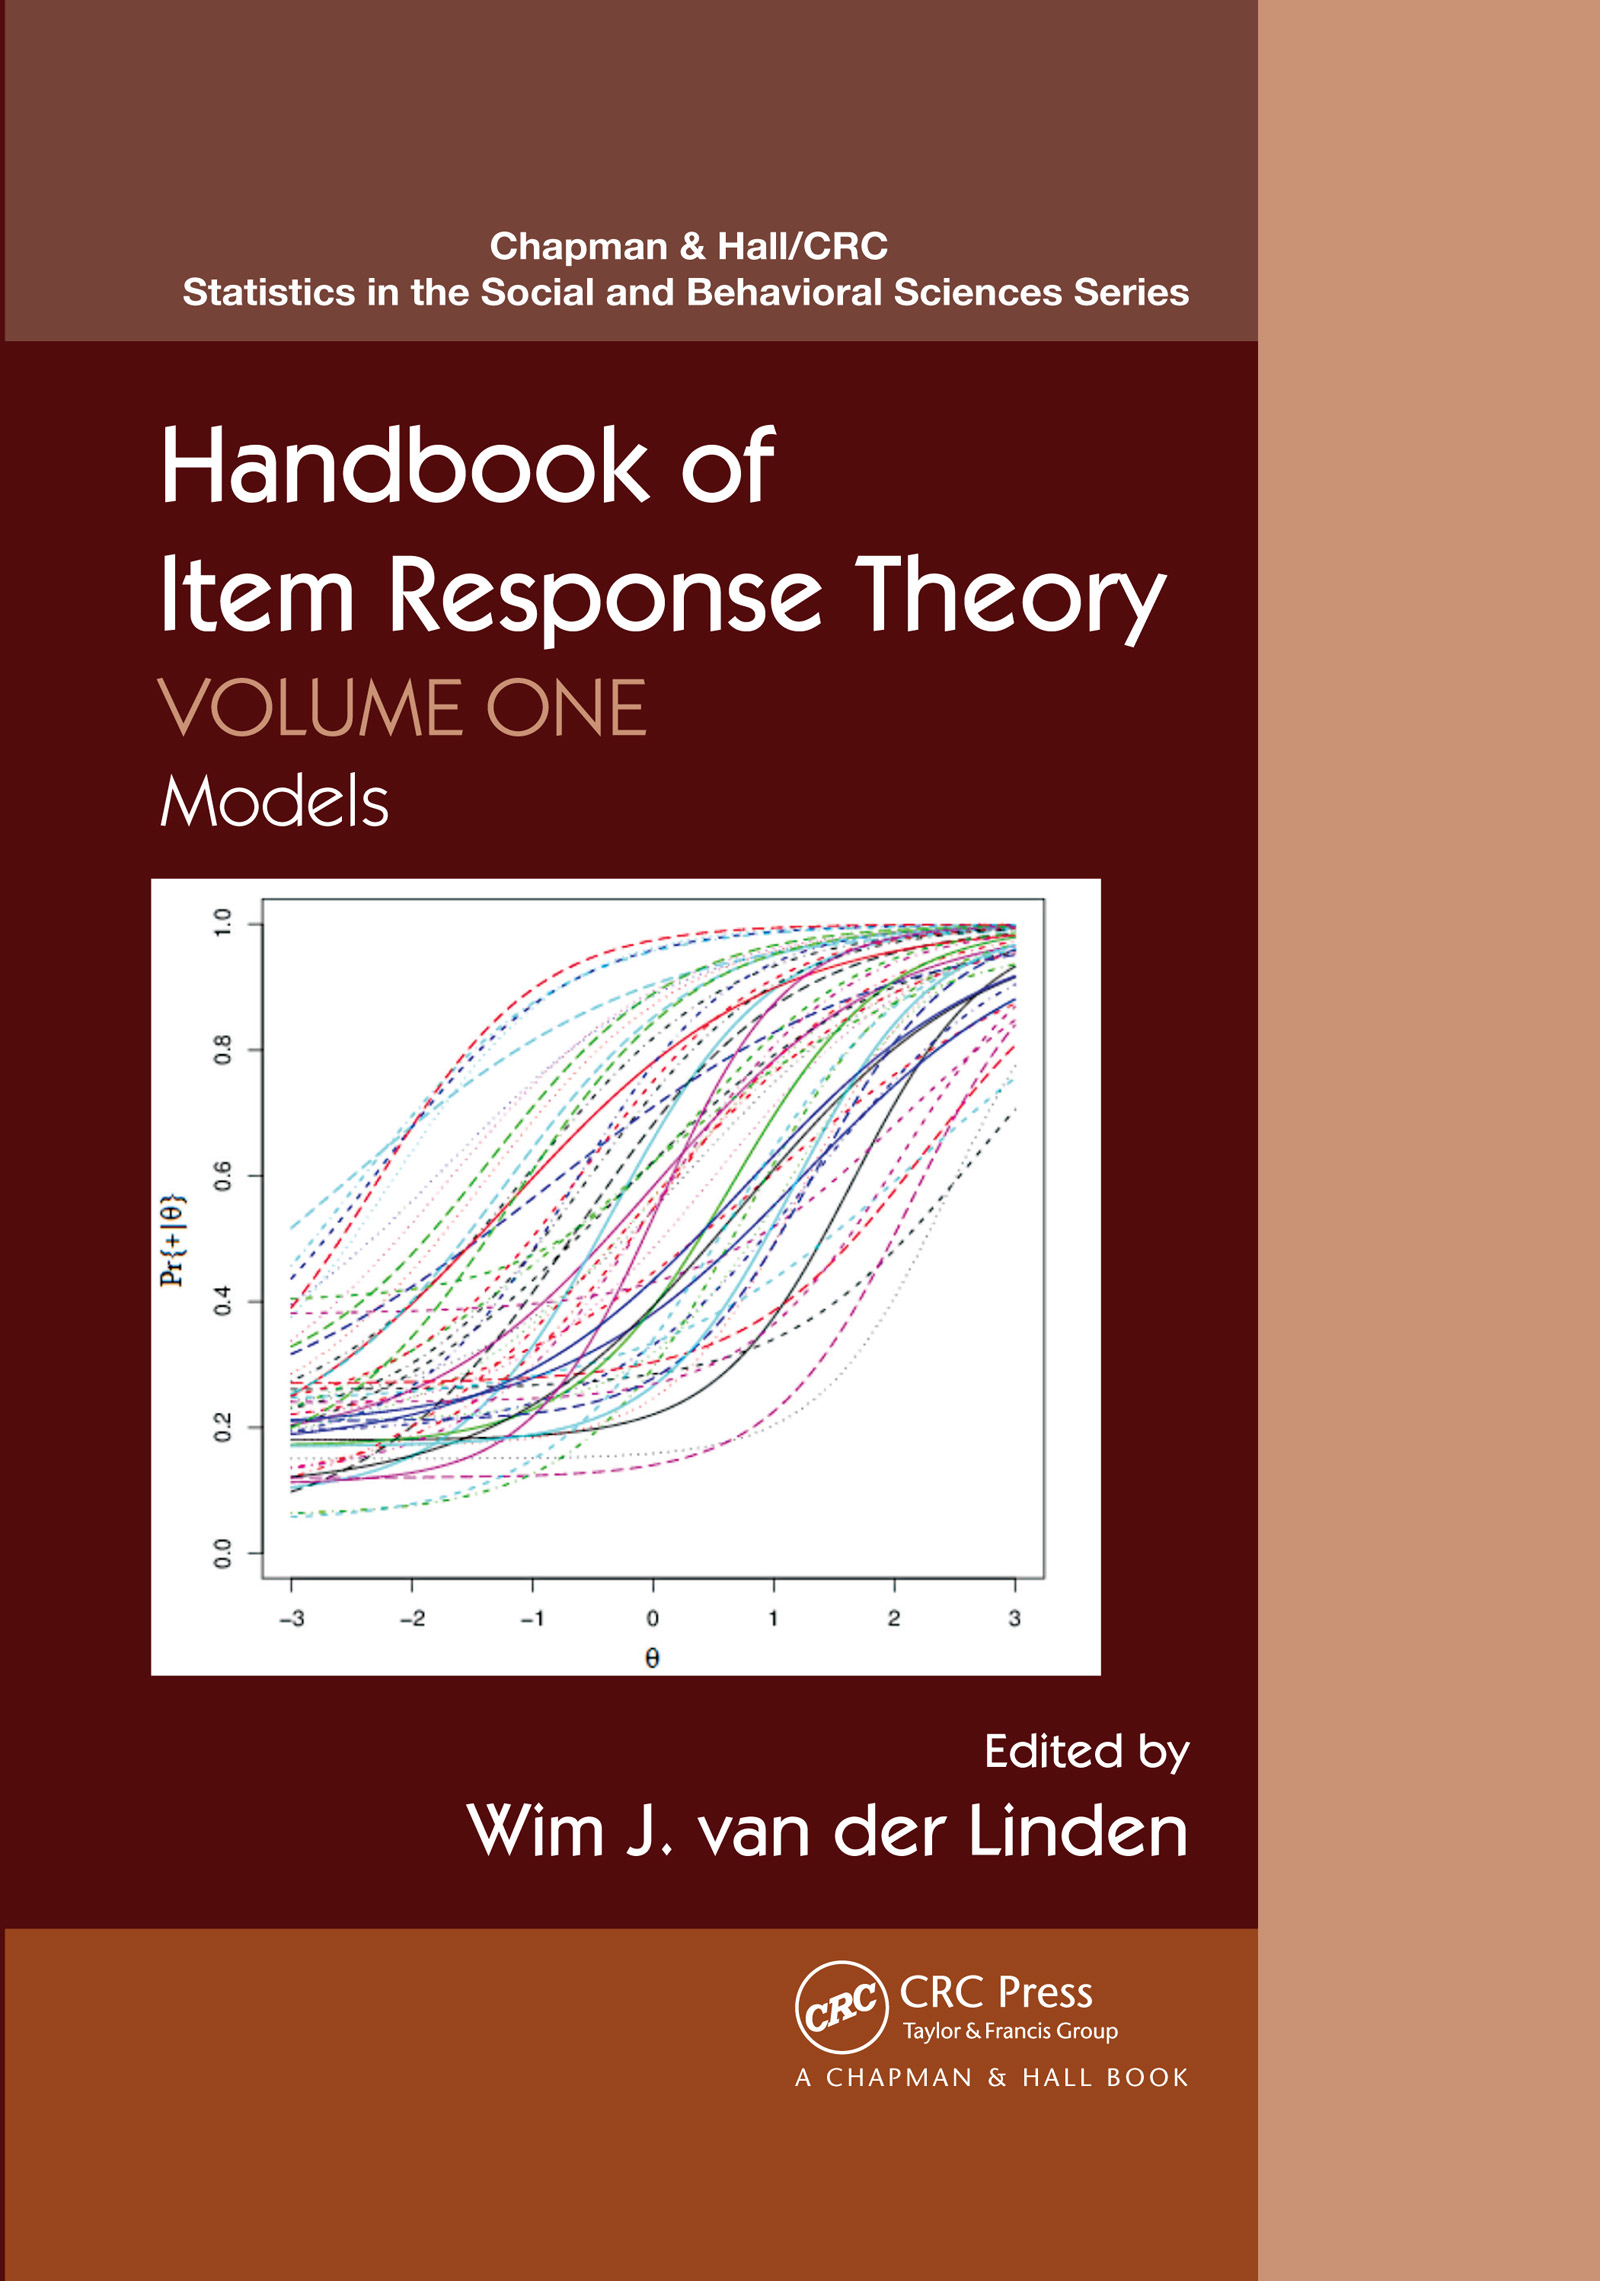 Handbook of Item Response Theory, Volume One: Models book cover